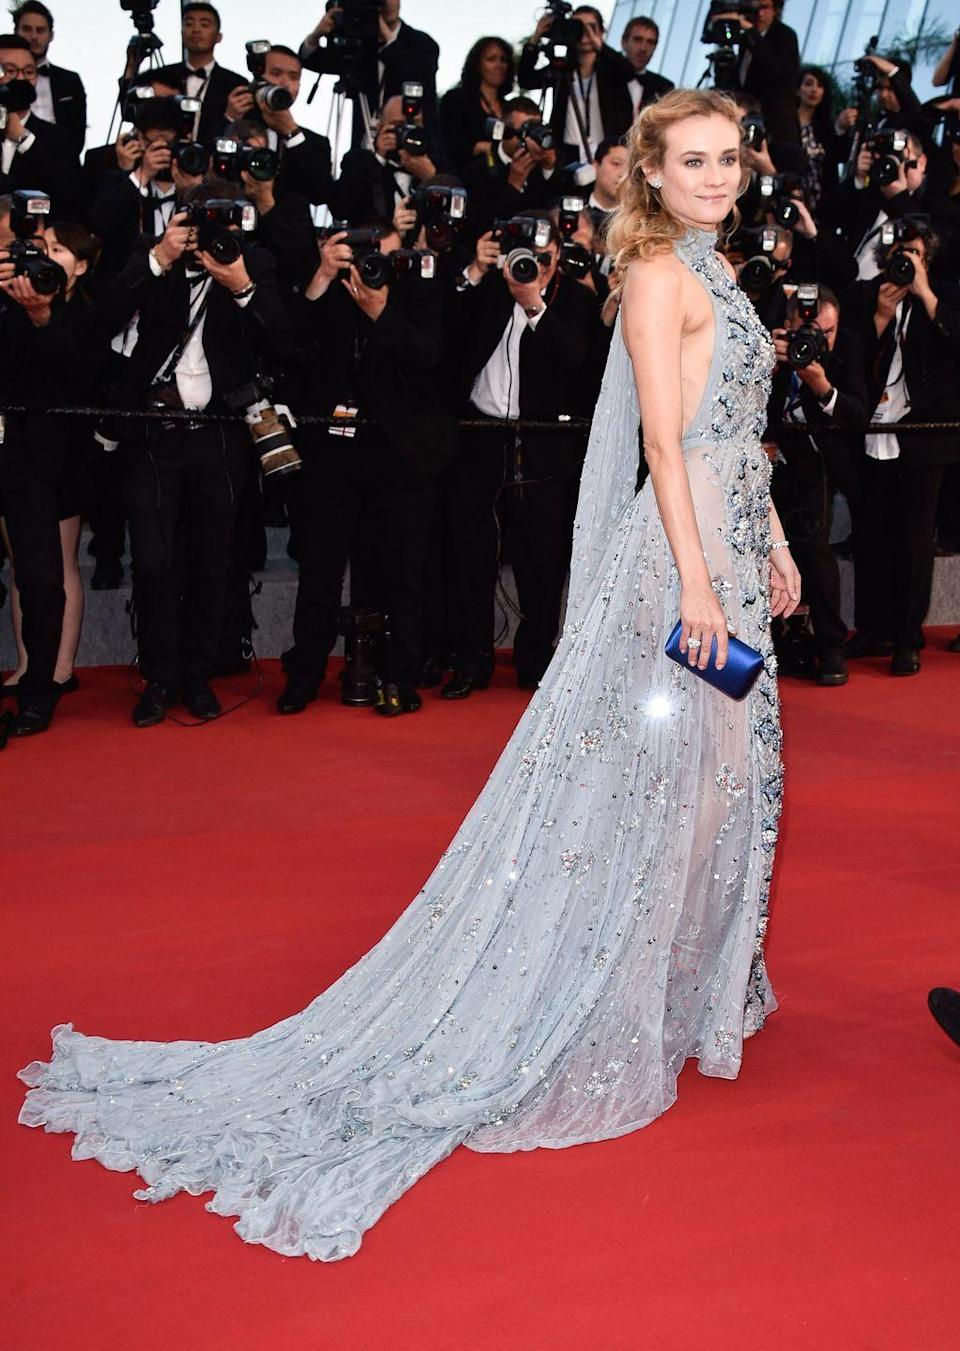 <p>The icy blue dress with a fluttery train and crystal details that Diane Kruger wore to the 2015 Cannes Film Festival makes her look a lot like the Snow Queen.</p>